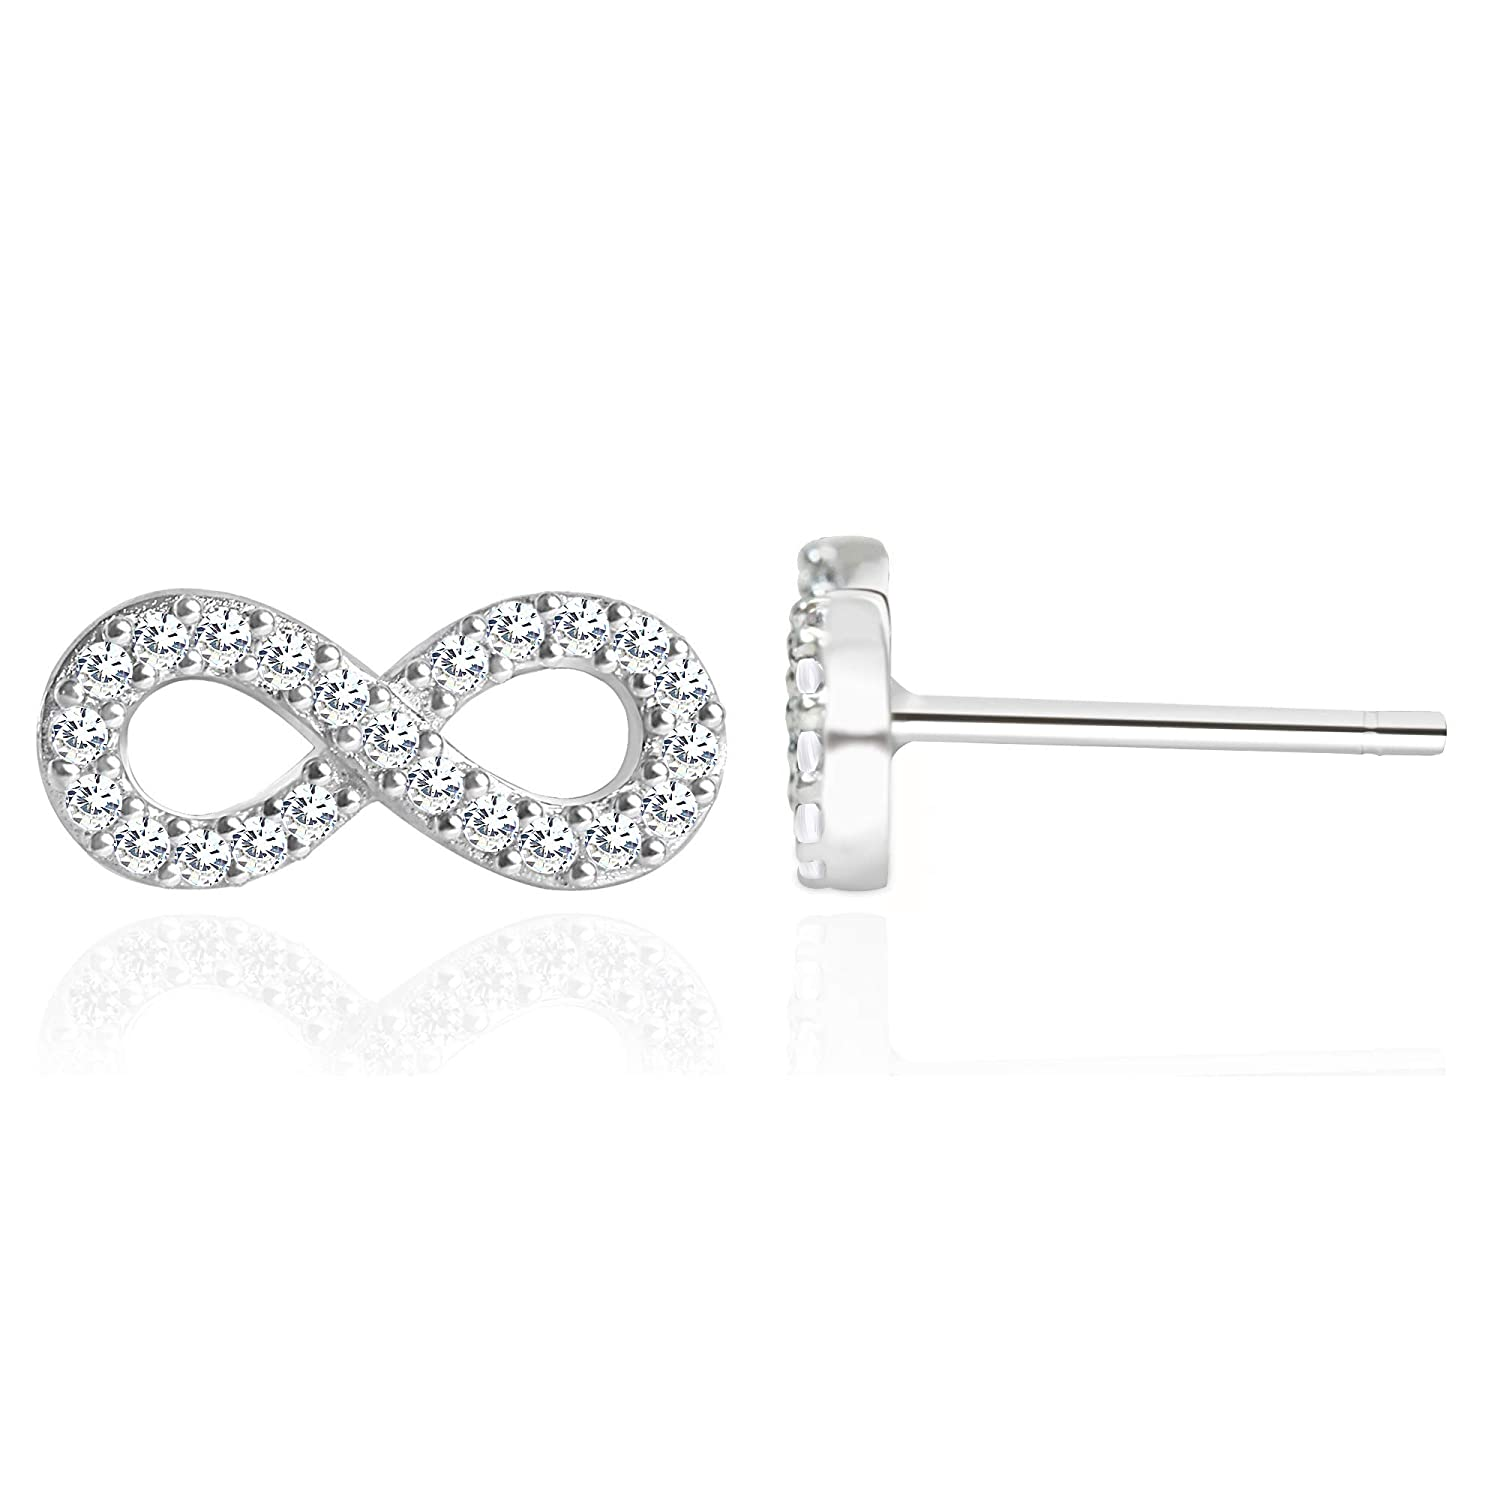 34e3fb966 Amazon.com: Spoil Cupid Rhodium Plated 925 Sterling Silver Cubic Zirconic  Full Set Infinity Stud Earrings: Jewelry